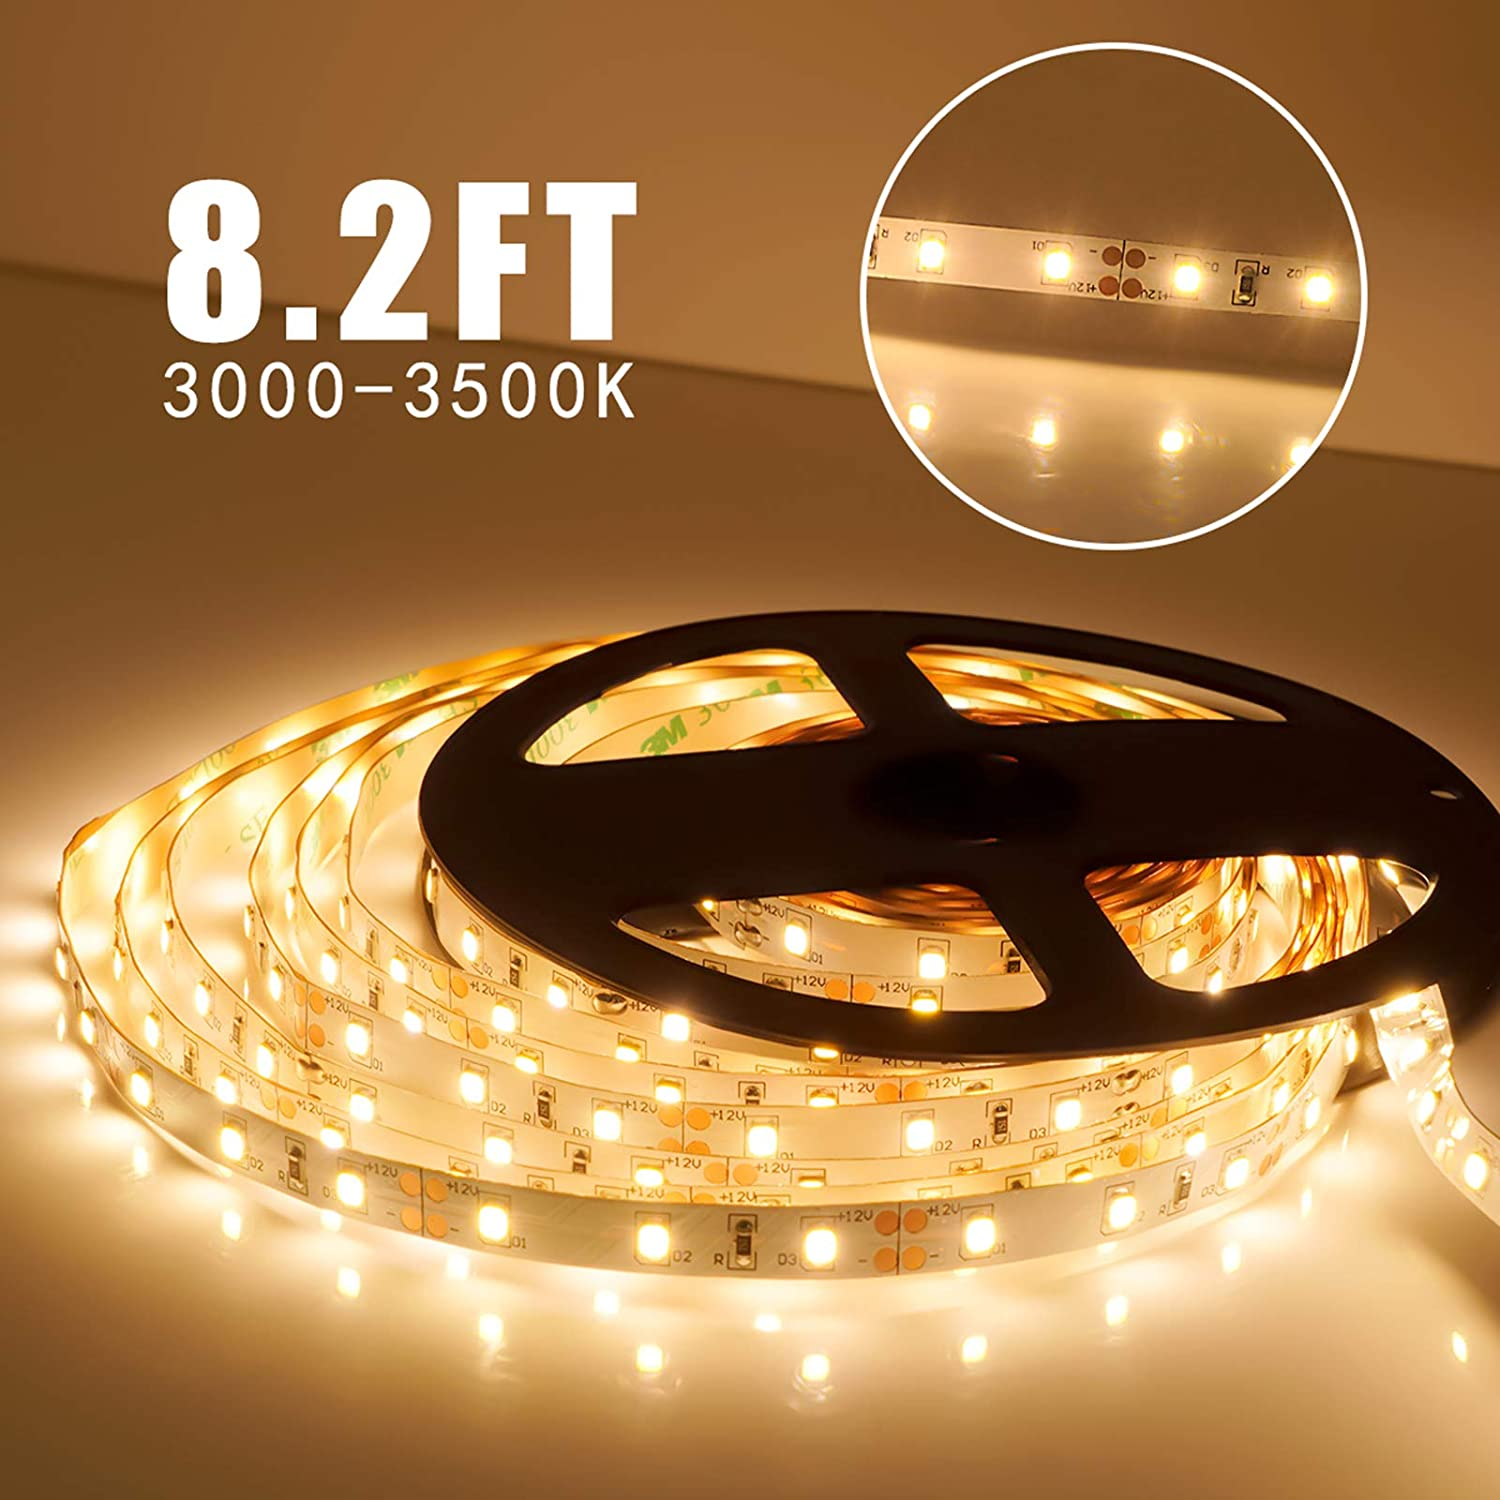 Moonlife99 Diy Flexible Led Strip Lights Pir Motion Sensor Activated Extending A Lighting Circuit Tips Projects Advice Uk Lets Under Cabinet Full Kit Bed For Kitchen Home Decorative